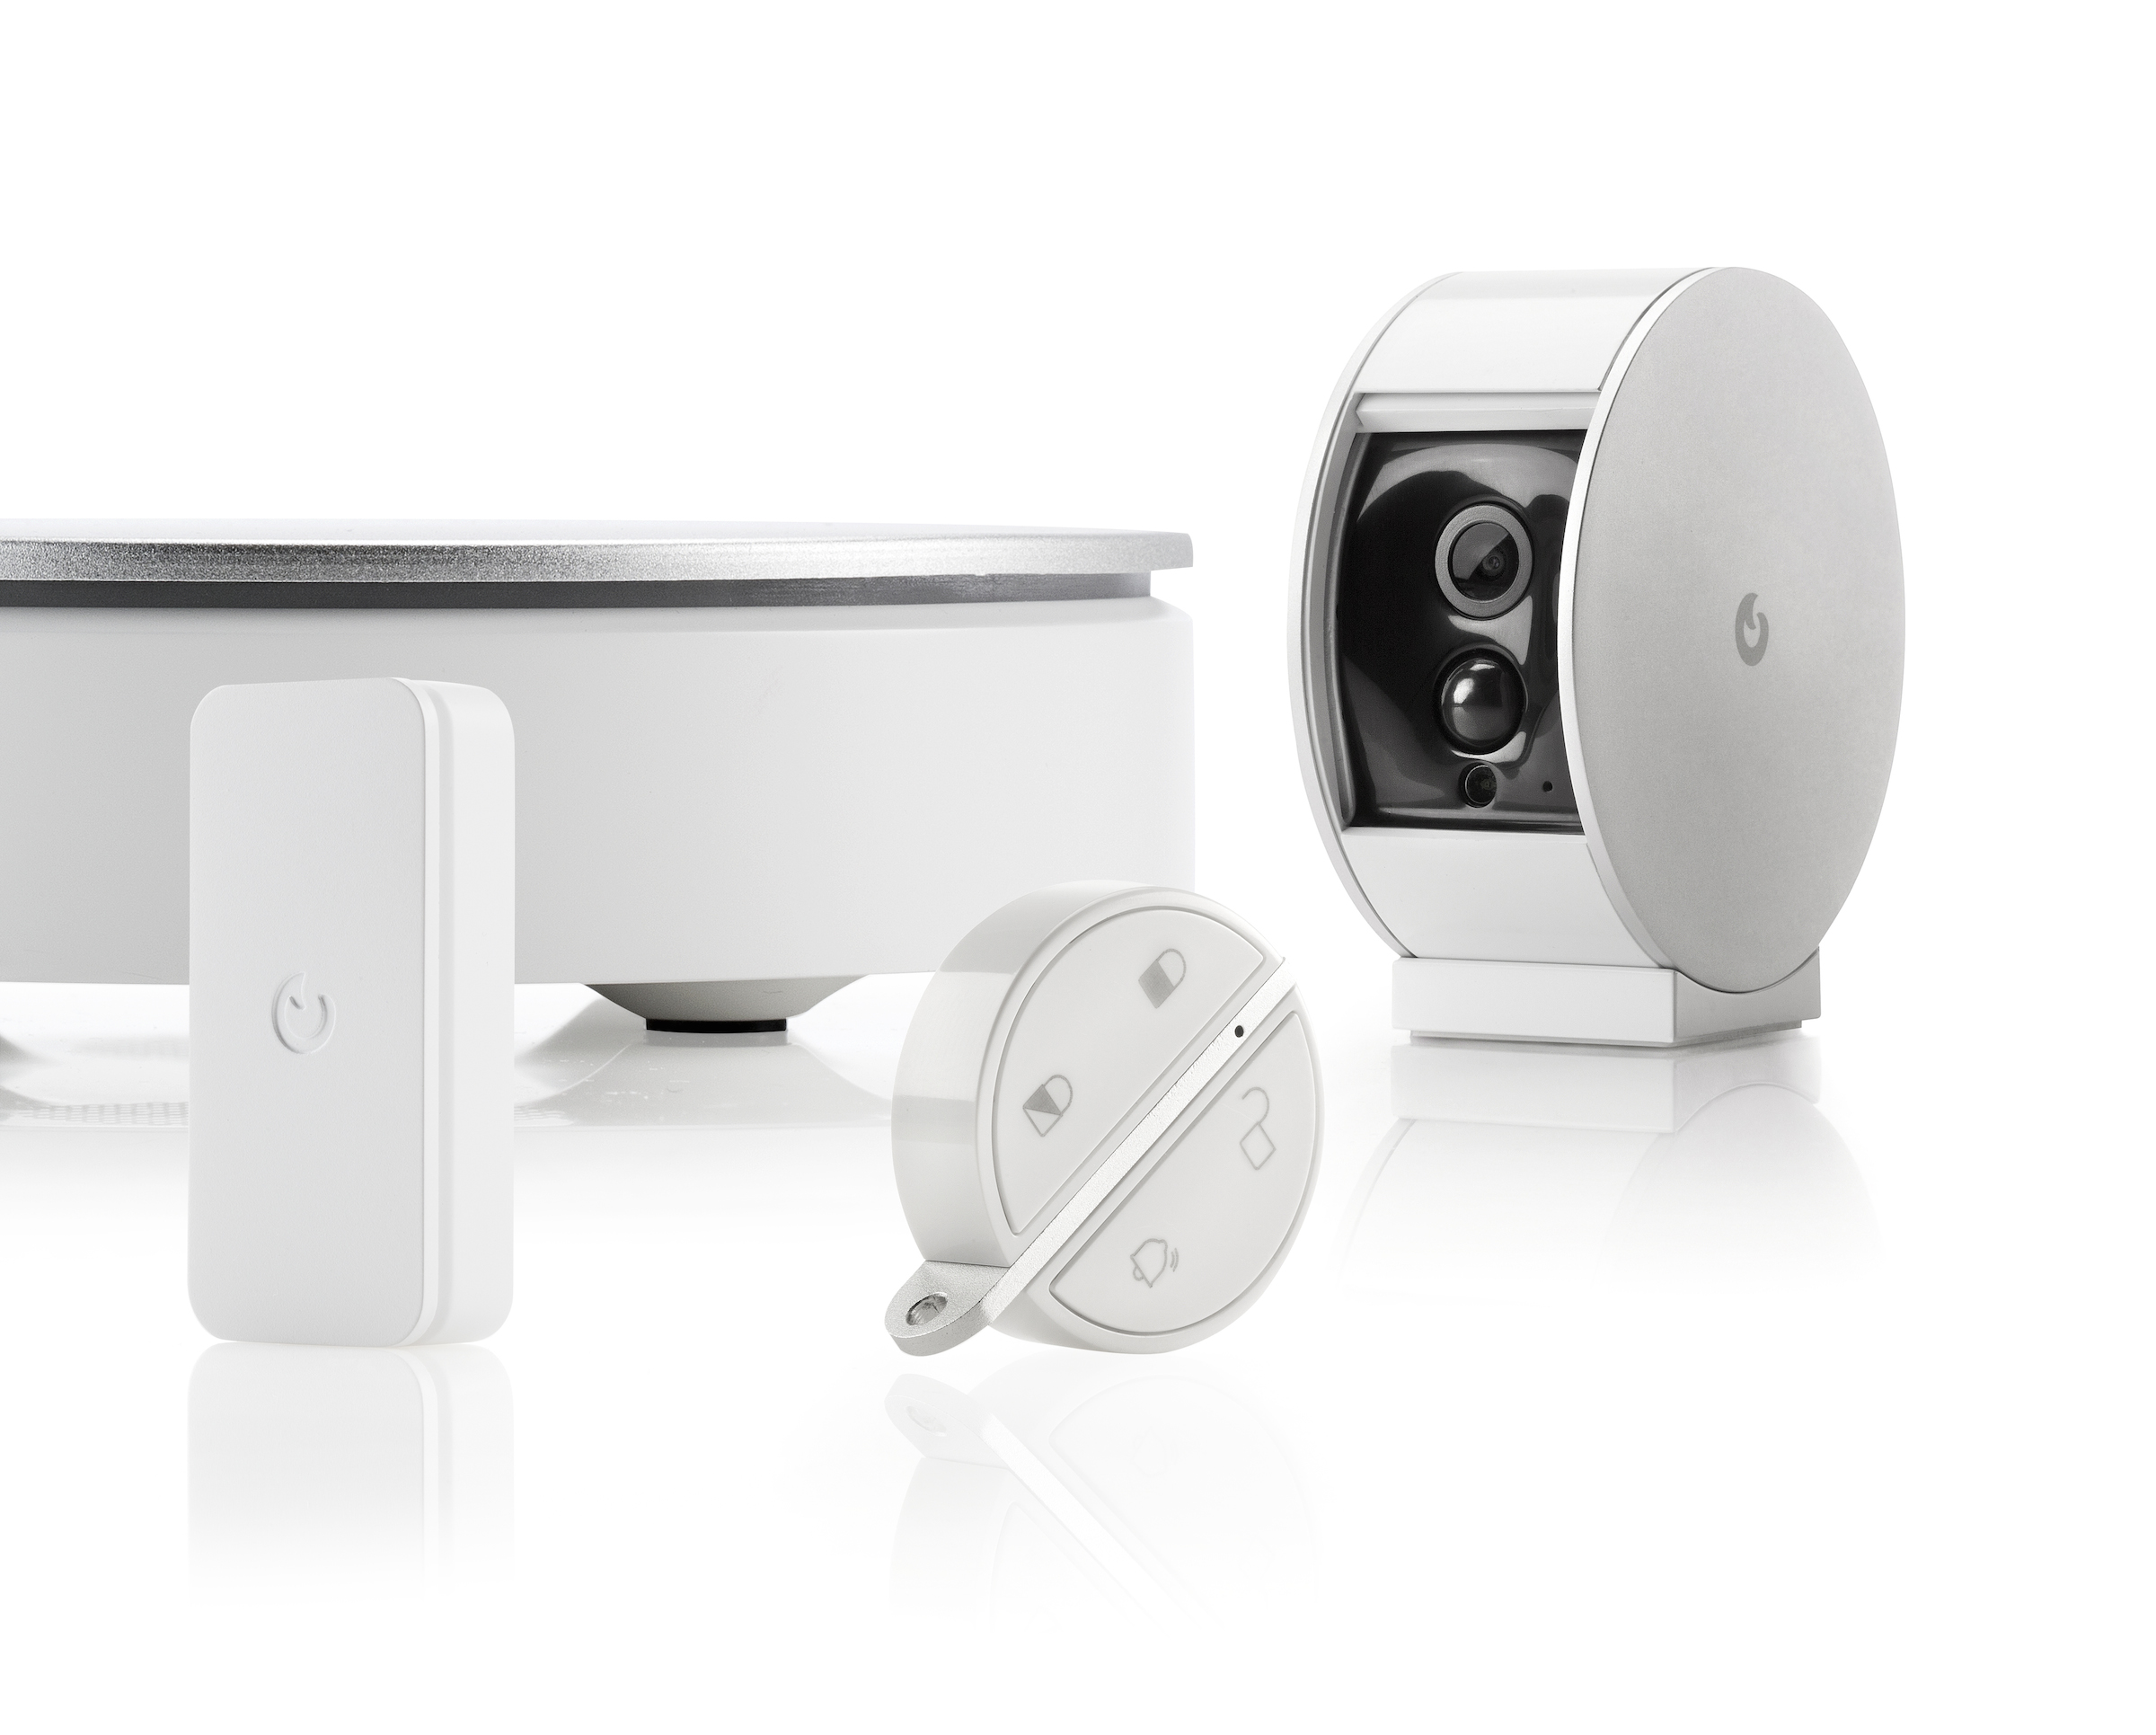 myfox security camera offers remote controllable privacy. Black Bedroom Furniture Sets. Home Design Ideas